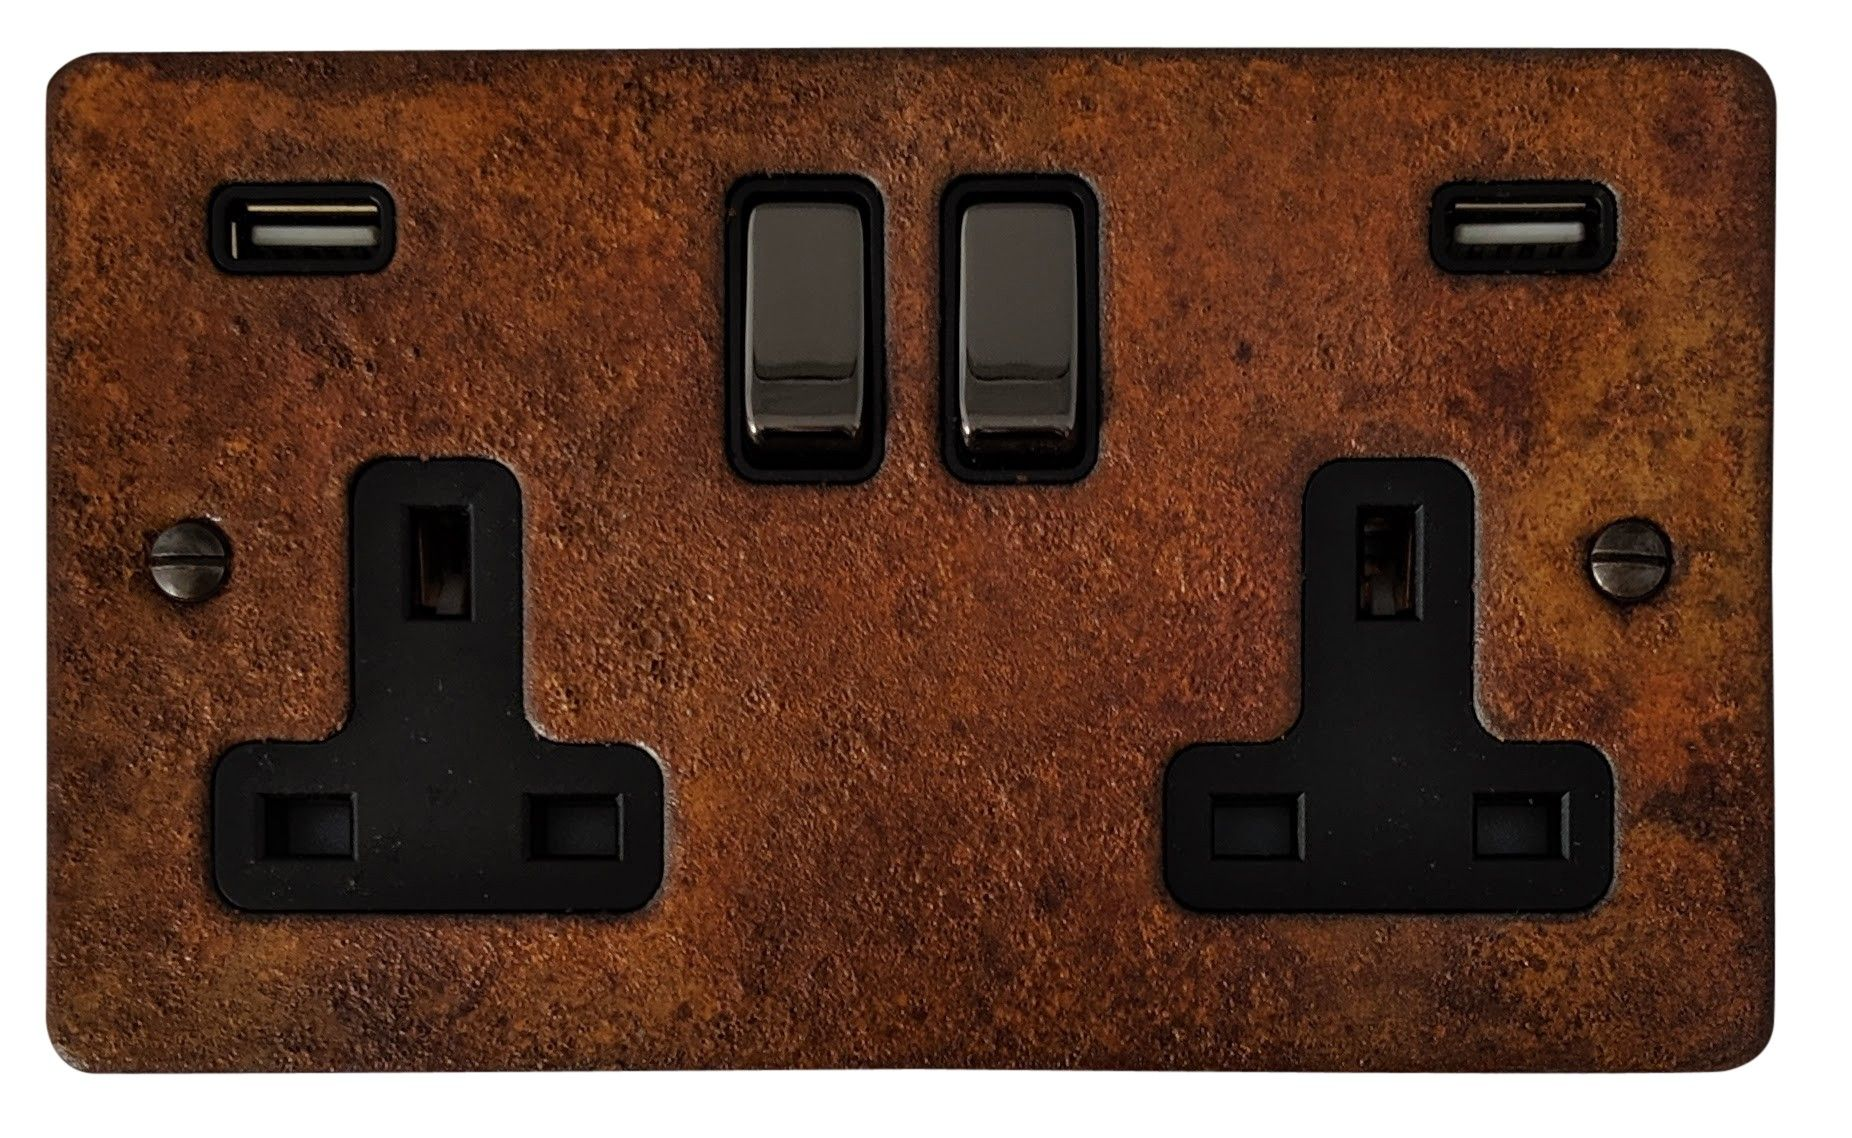 G&H FRT3910 Flat Plate Rust 2 Gang Double 13A Switched Plug Socket 2.1A USB